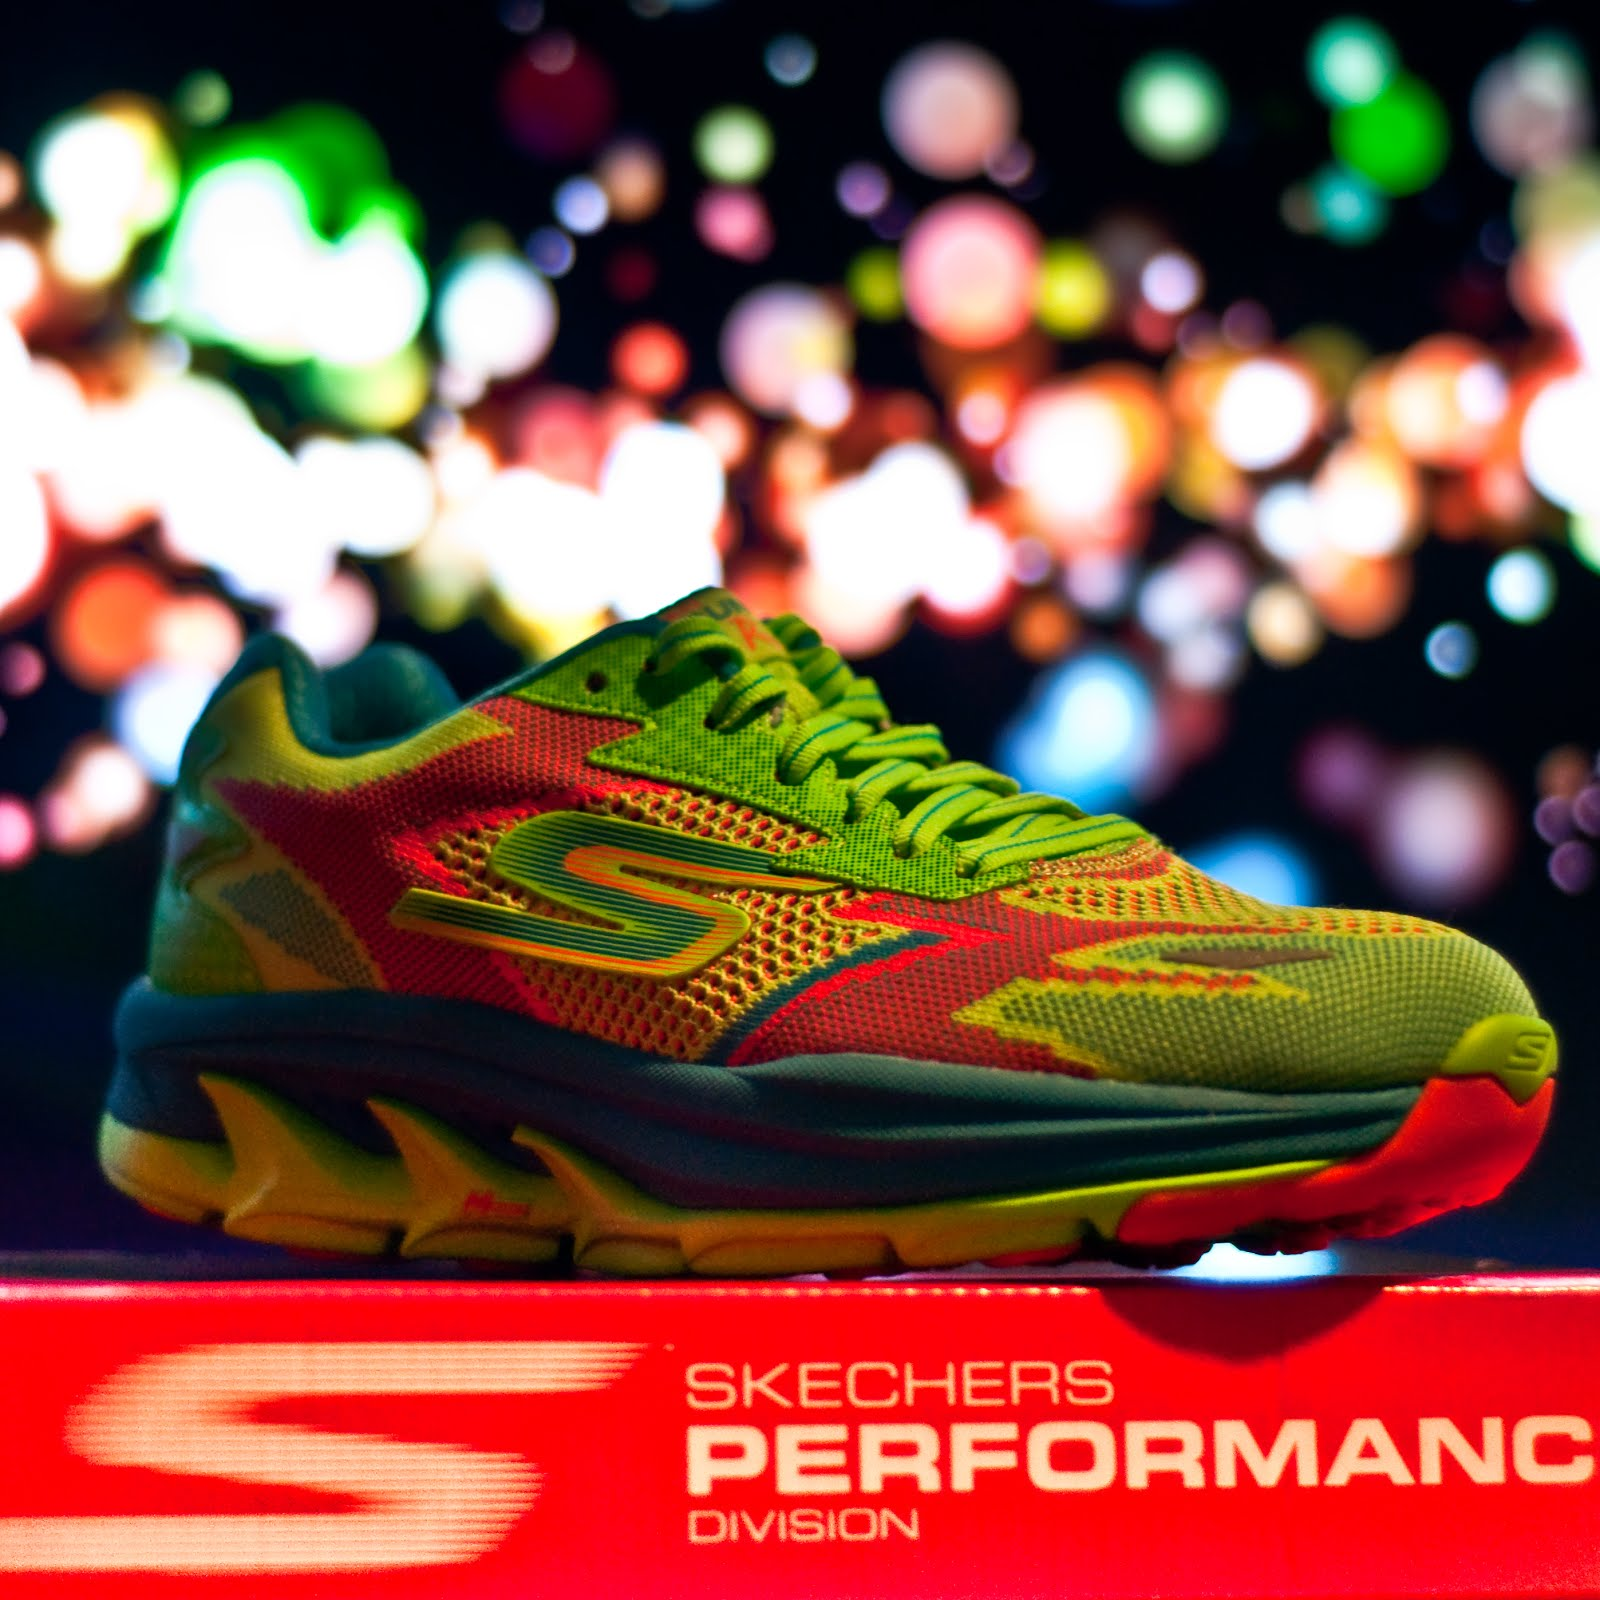 bdcce2f8e65f Skechers GoRun Ultra R review - Blogs - Sports.my - Malaysia s Sports  Portal   Forum - Network with the sporting community